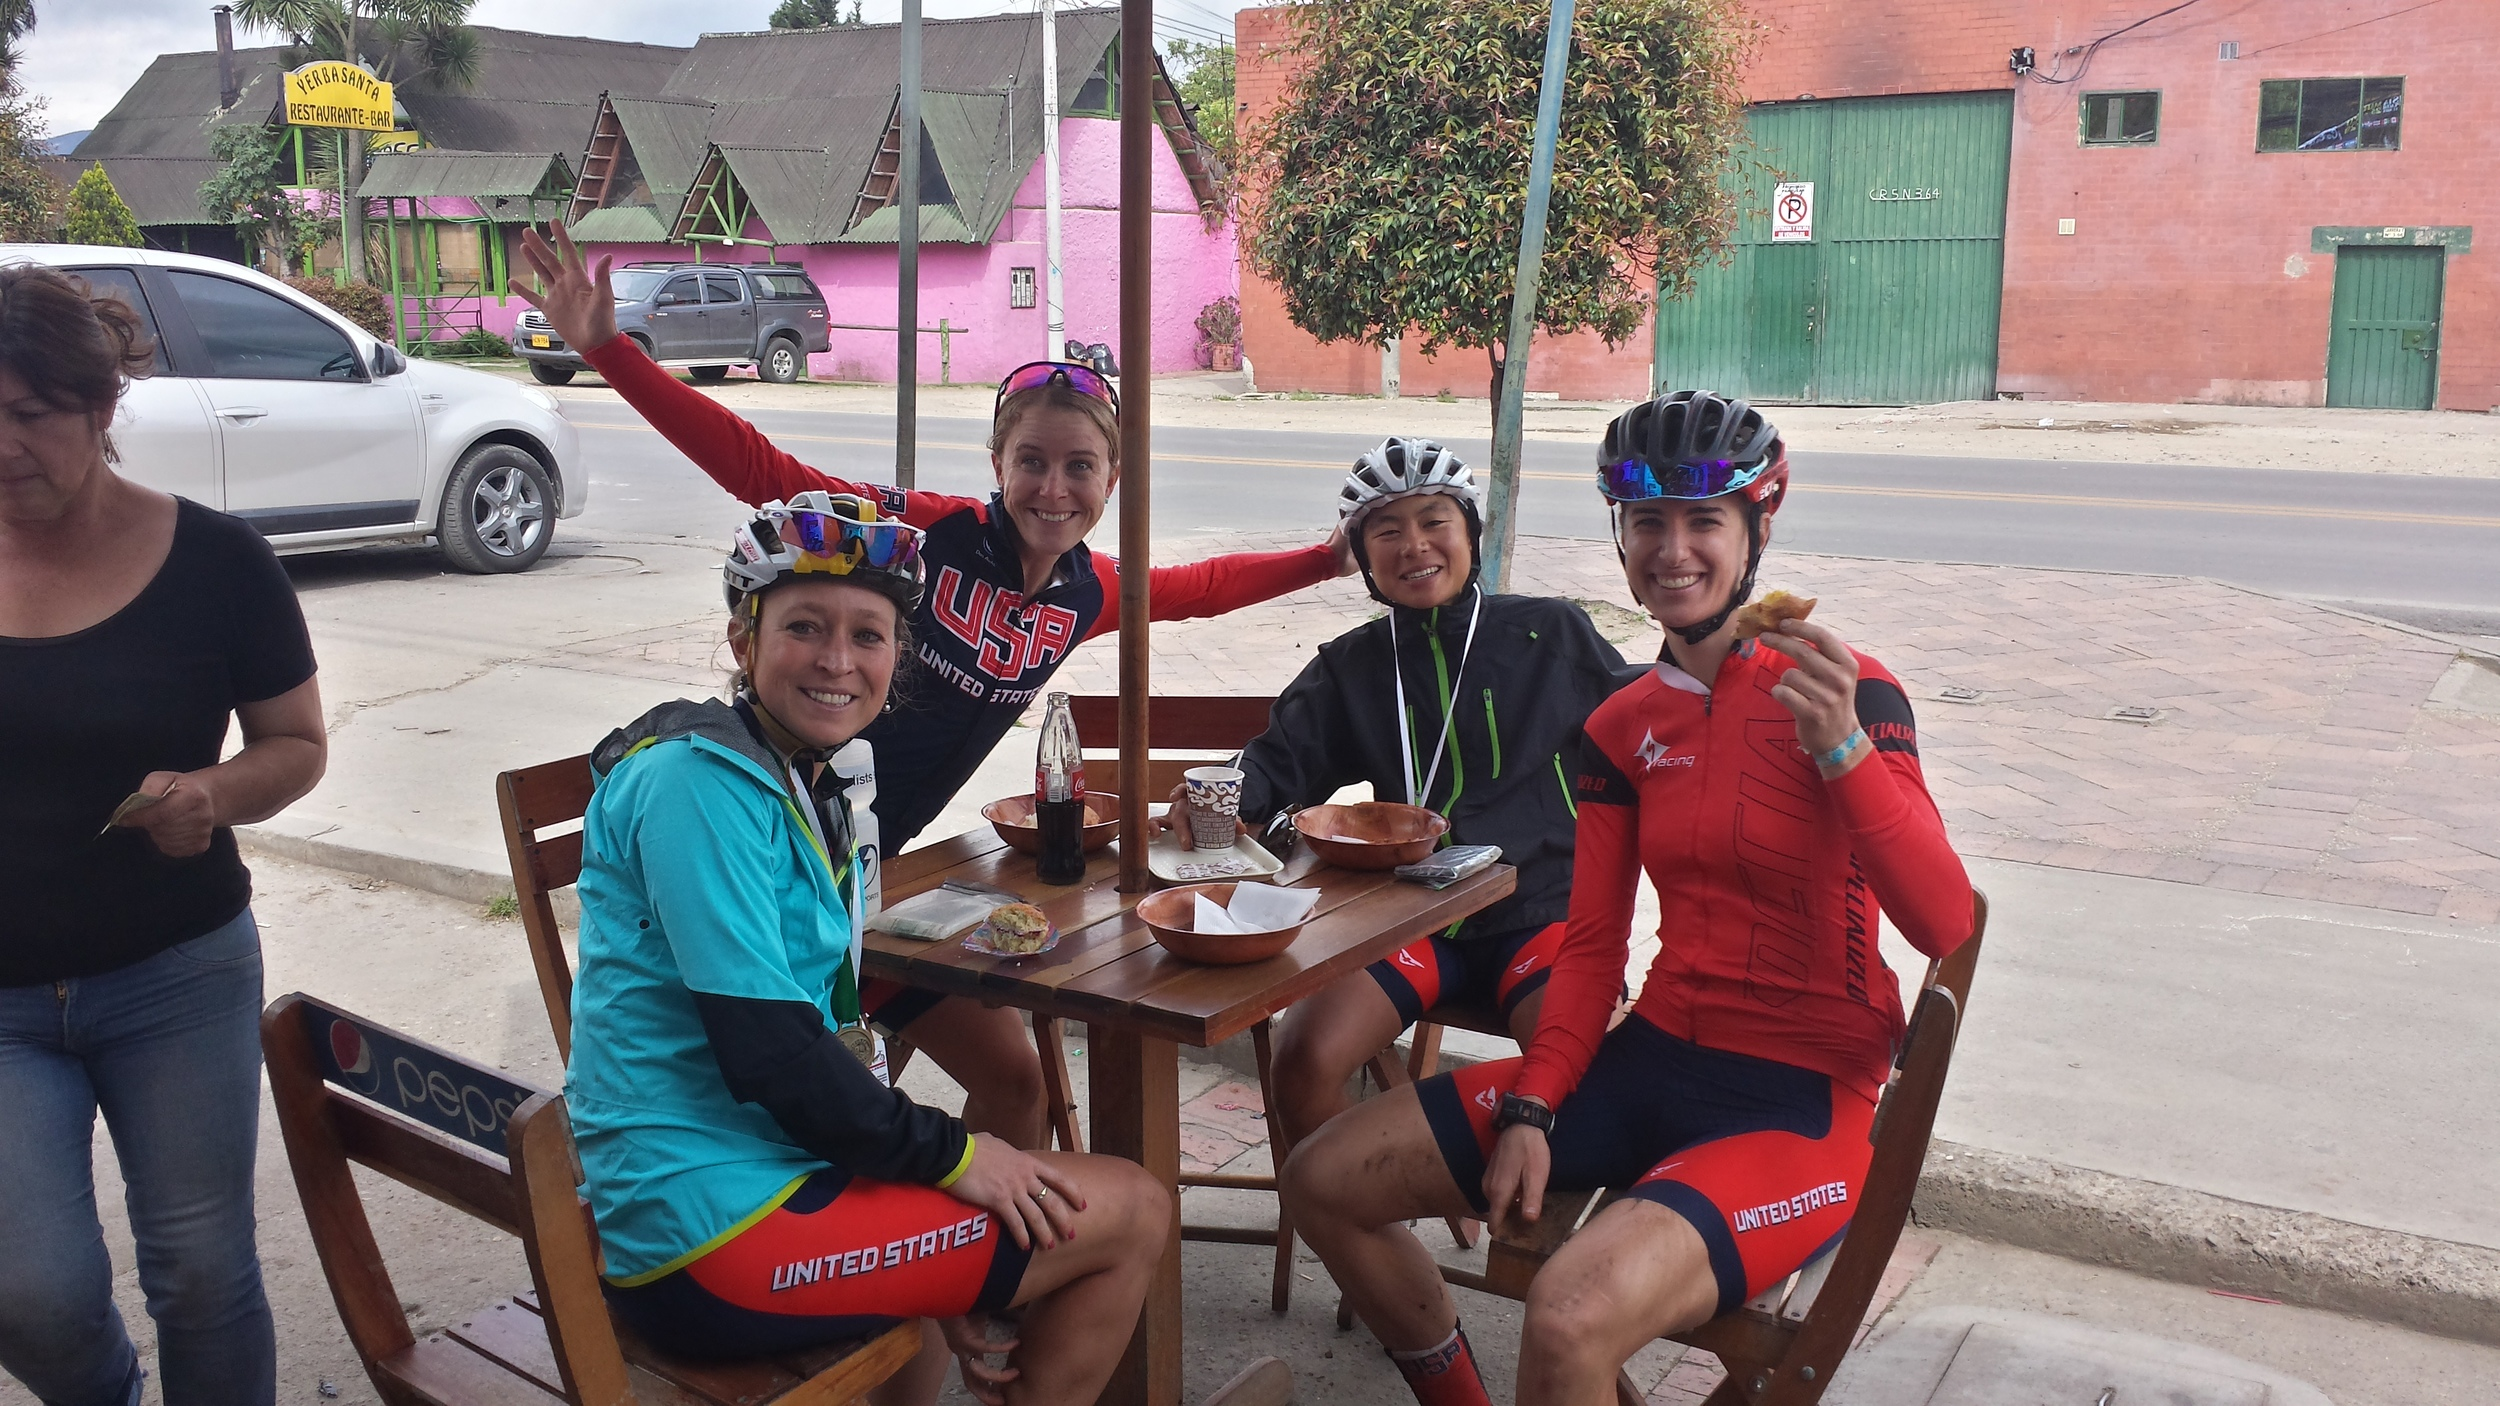 Post-race bakery stop.